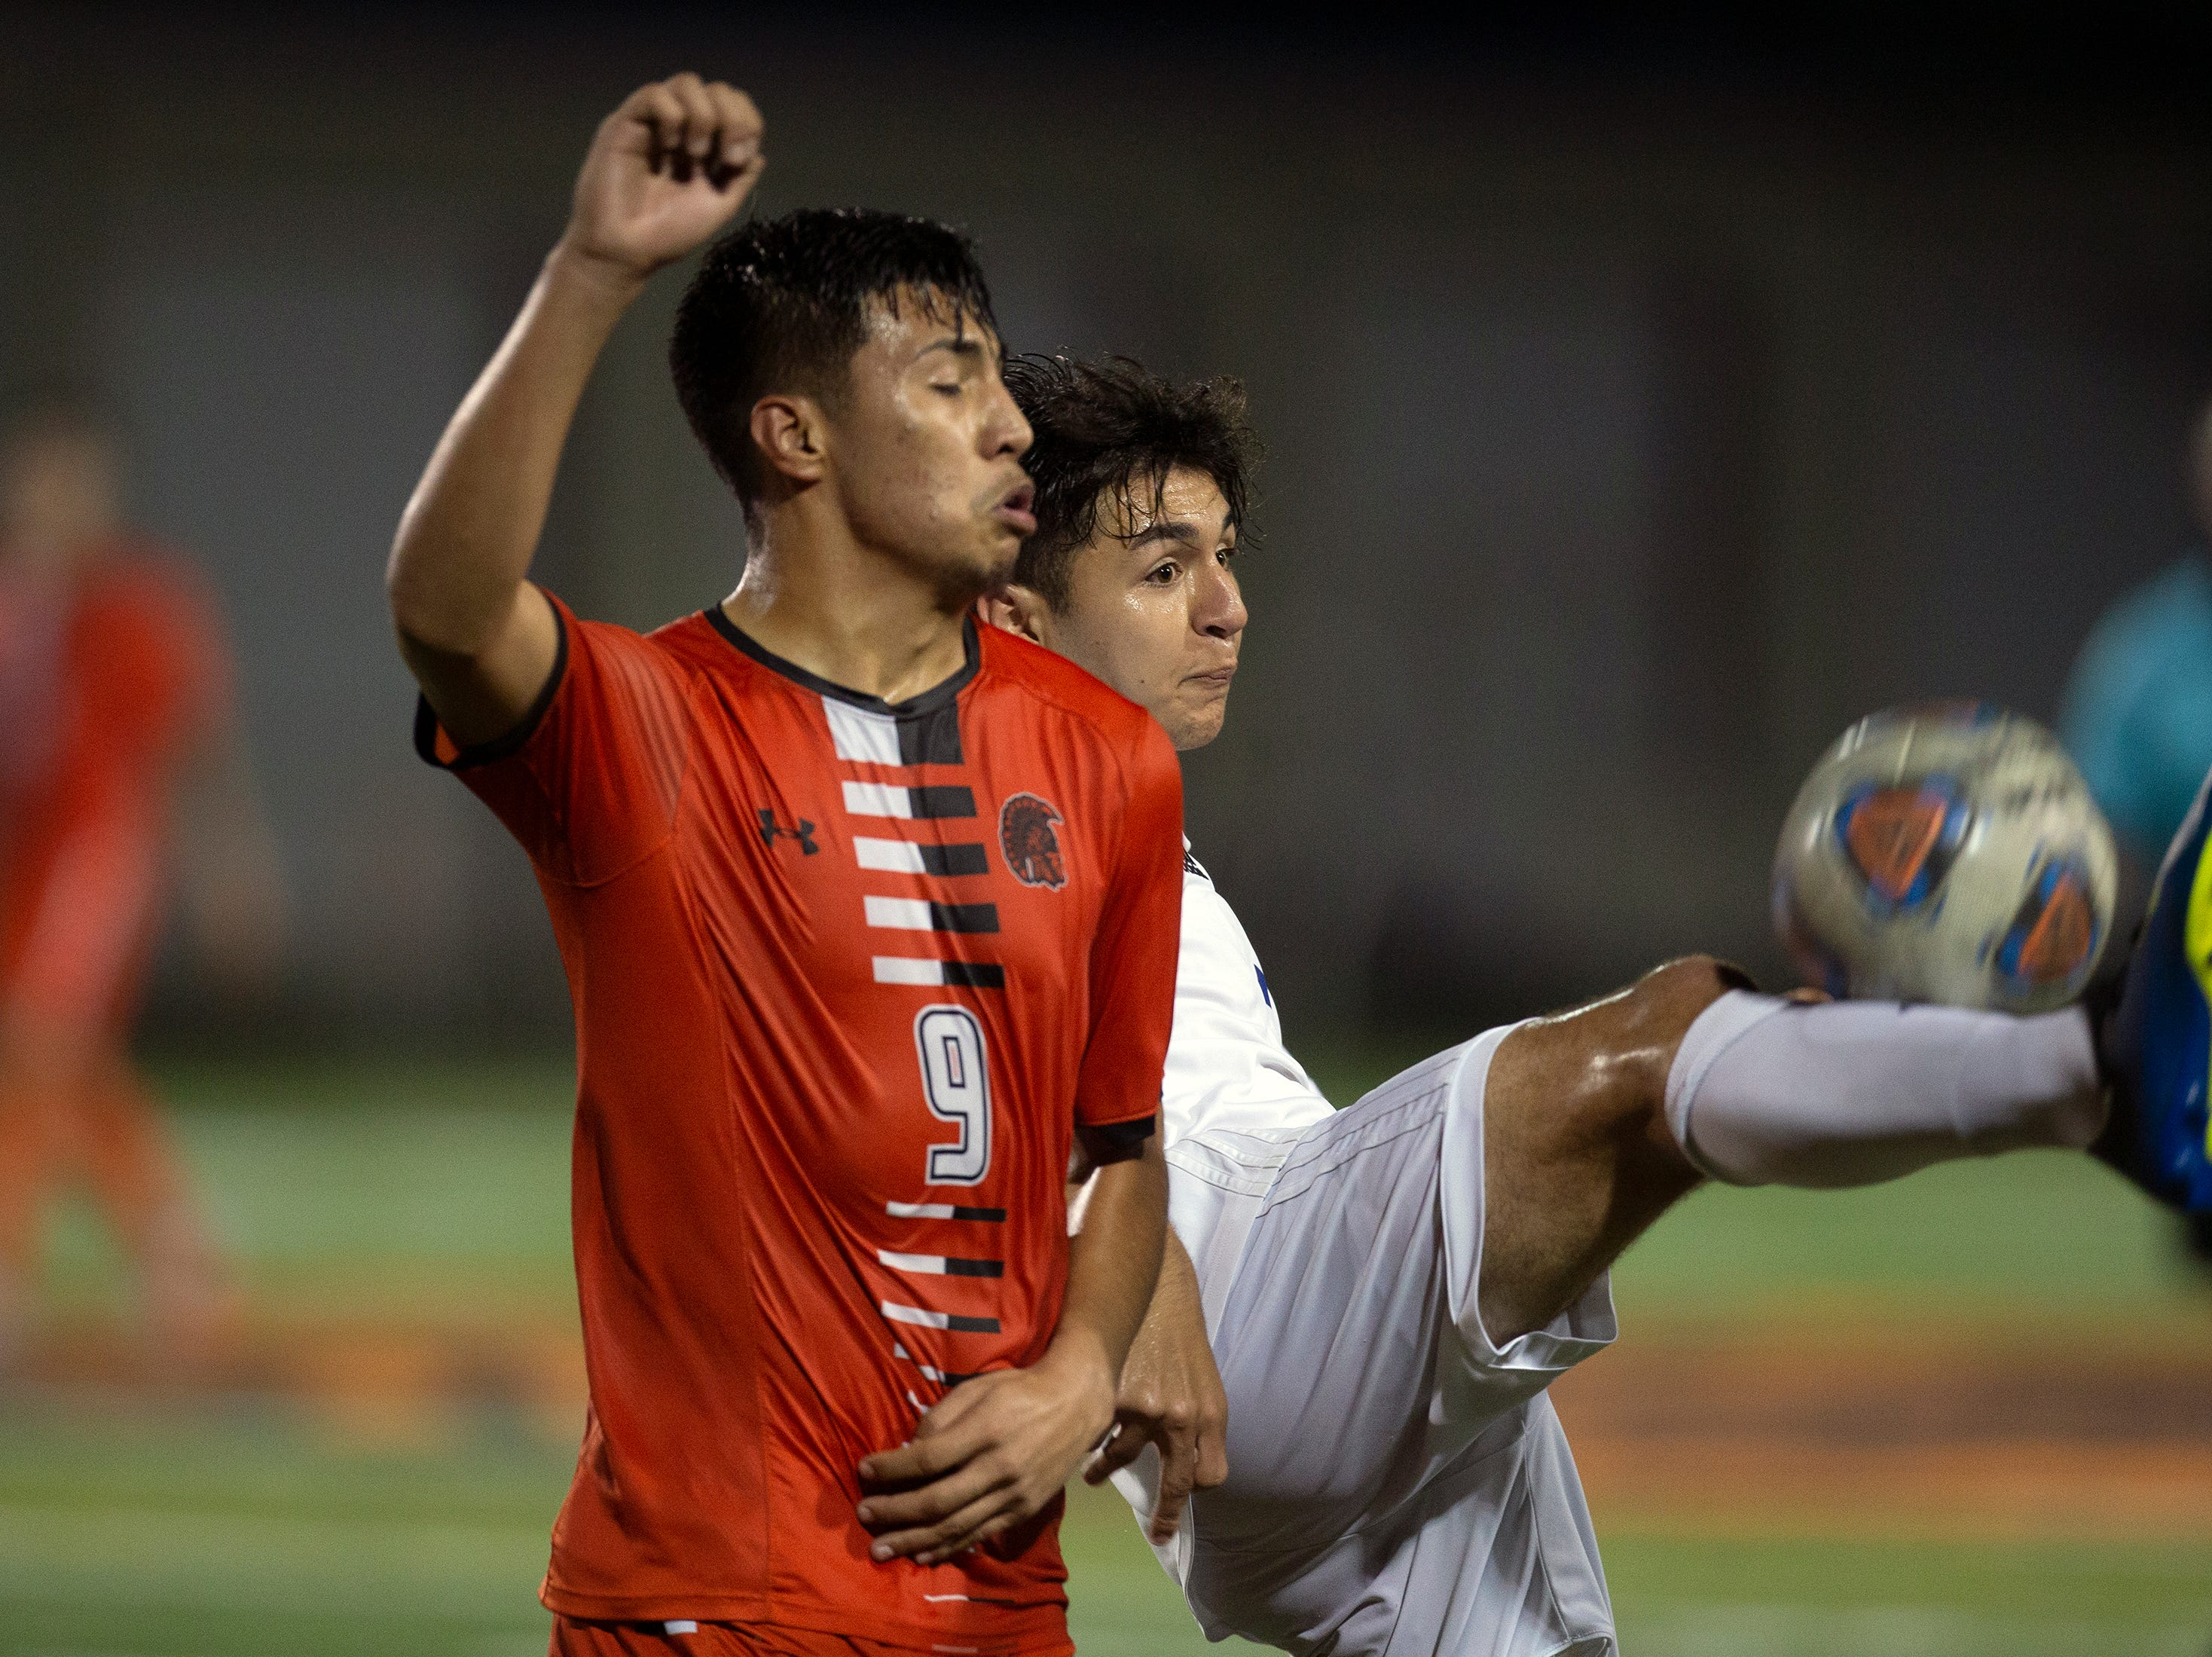 Cape Coral Ethan Wiese kicks the ball away from Lely's David Gomez, Wednesday, Feb. 6, 2019, at Lely High School.